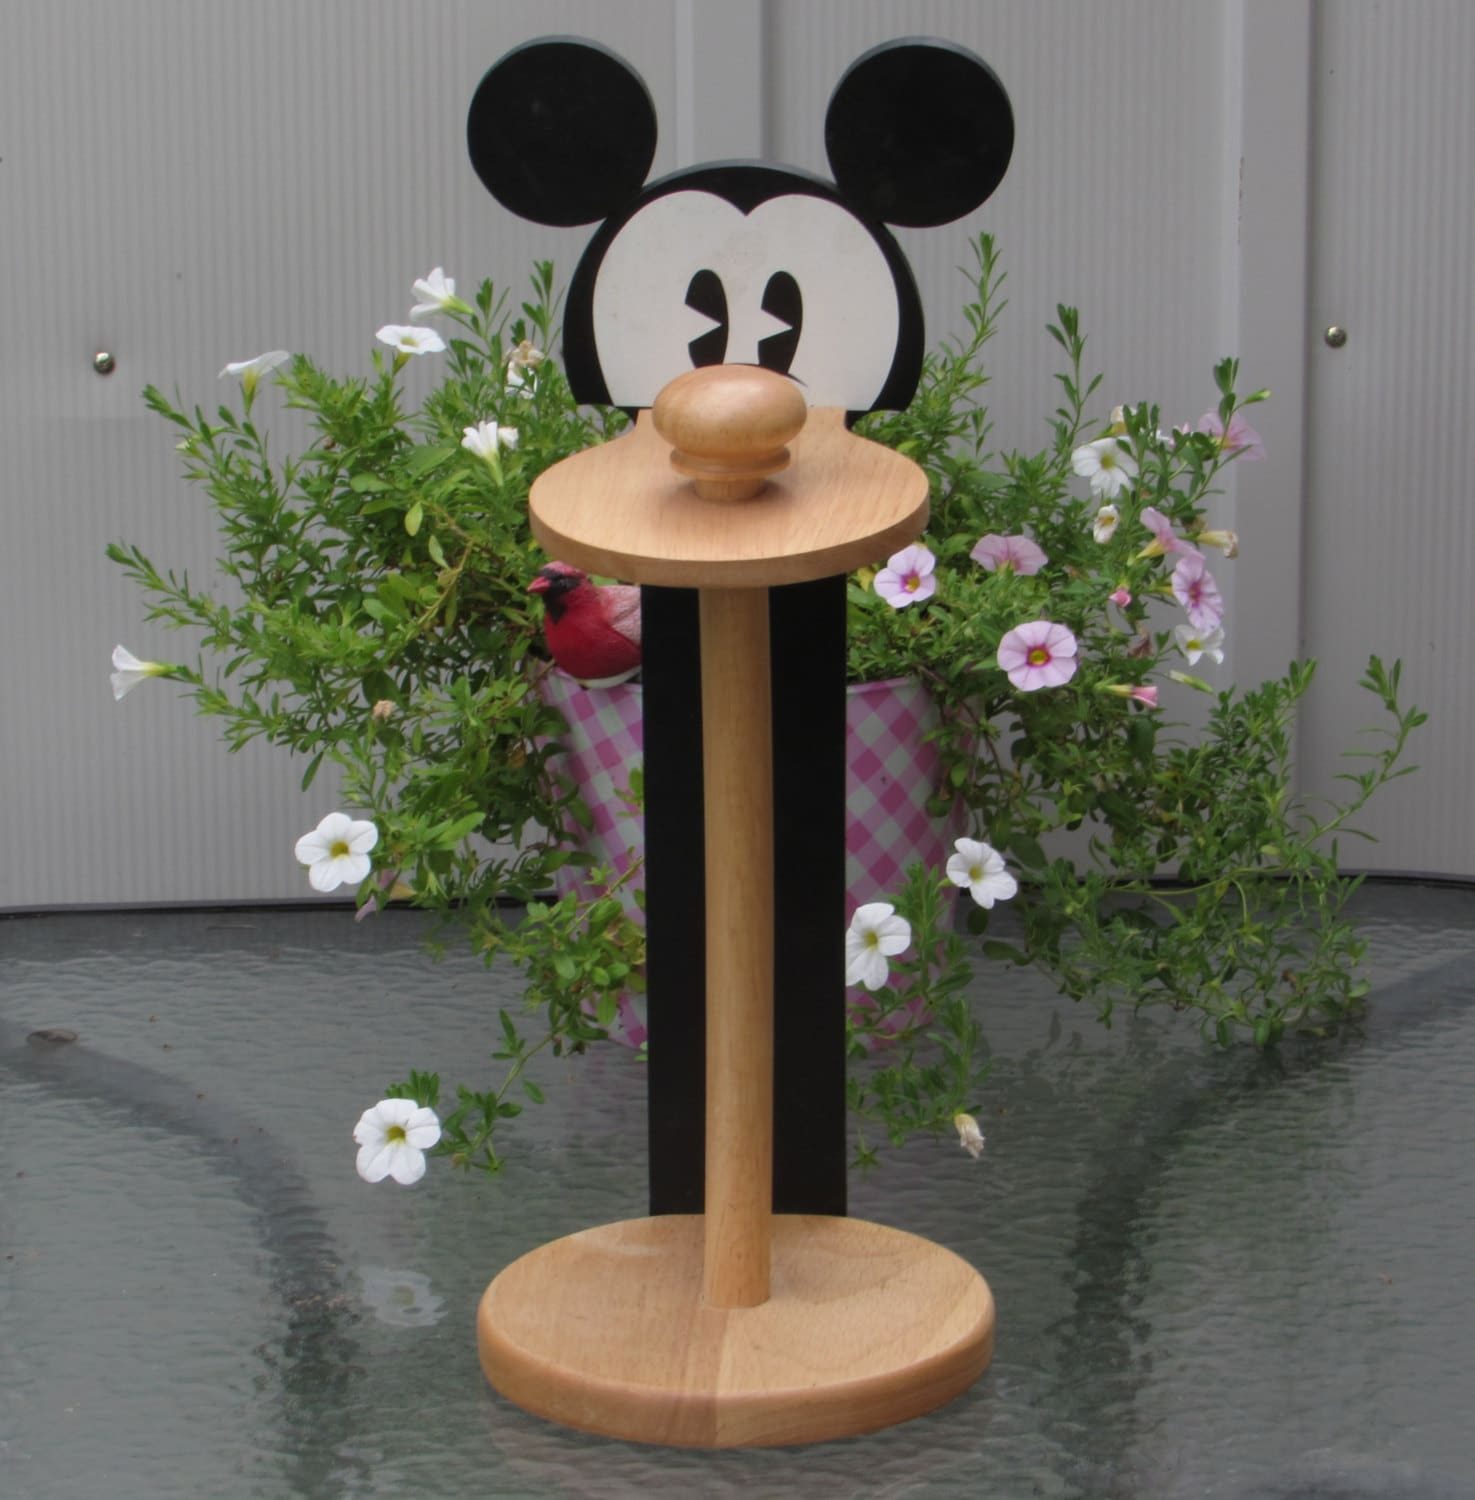 Mickey Mouse Paper Towel Holder Wooden Disney Character